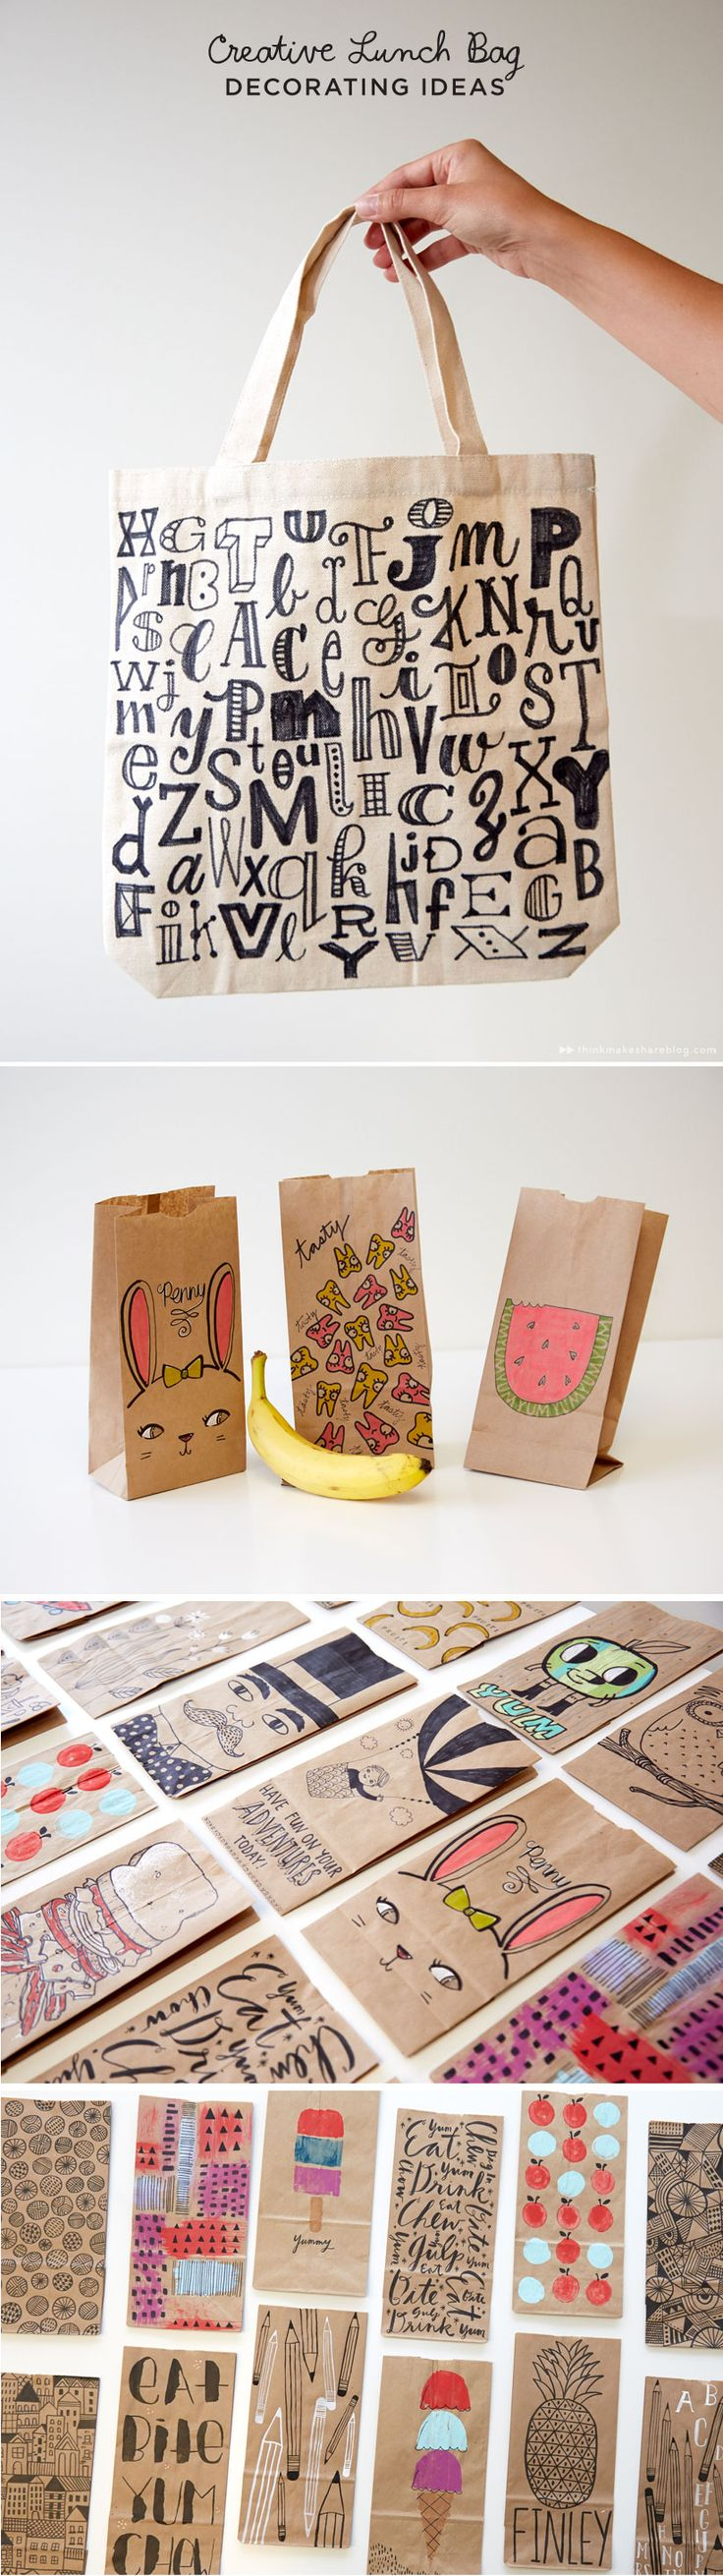 Back to school with creative lunch bags and totespraew siri